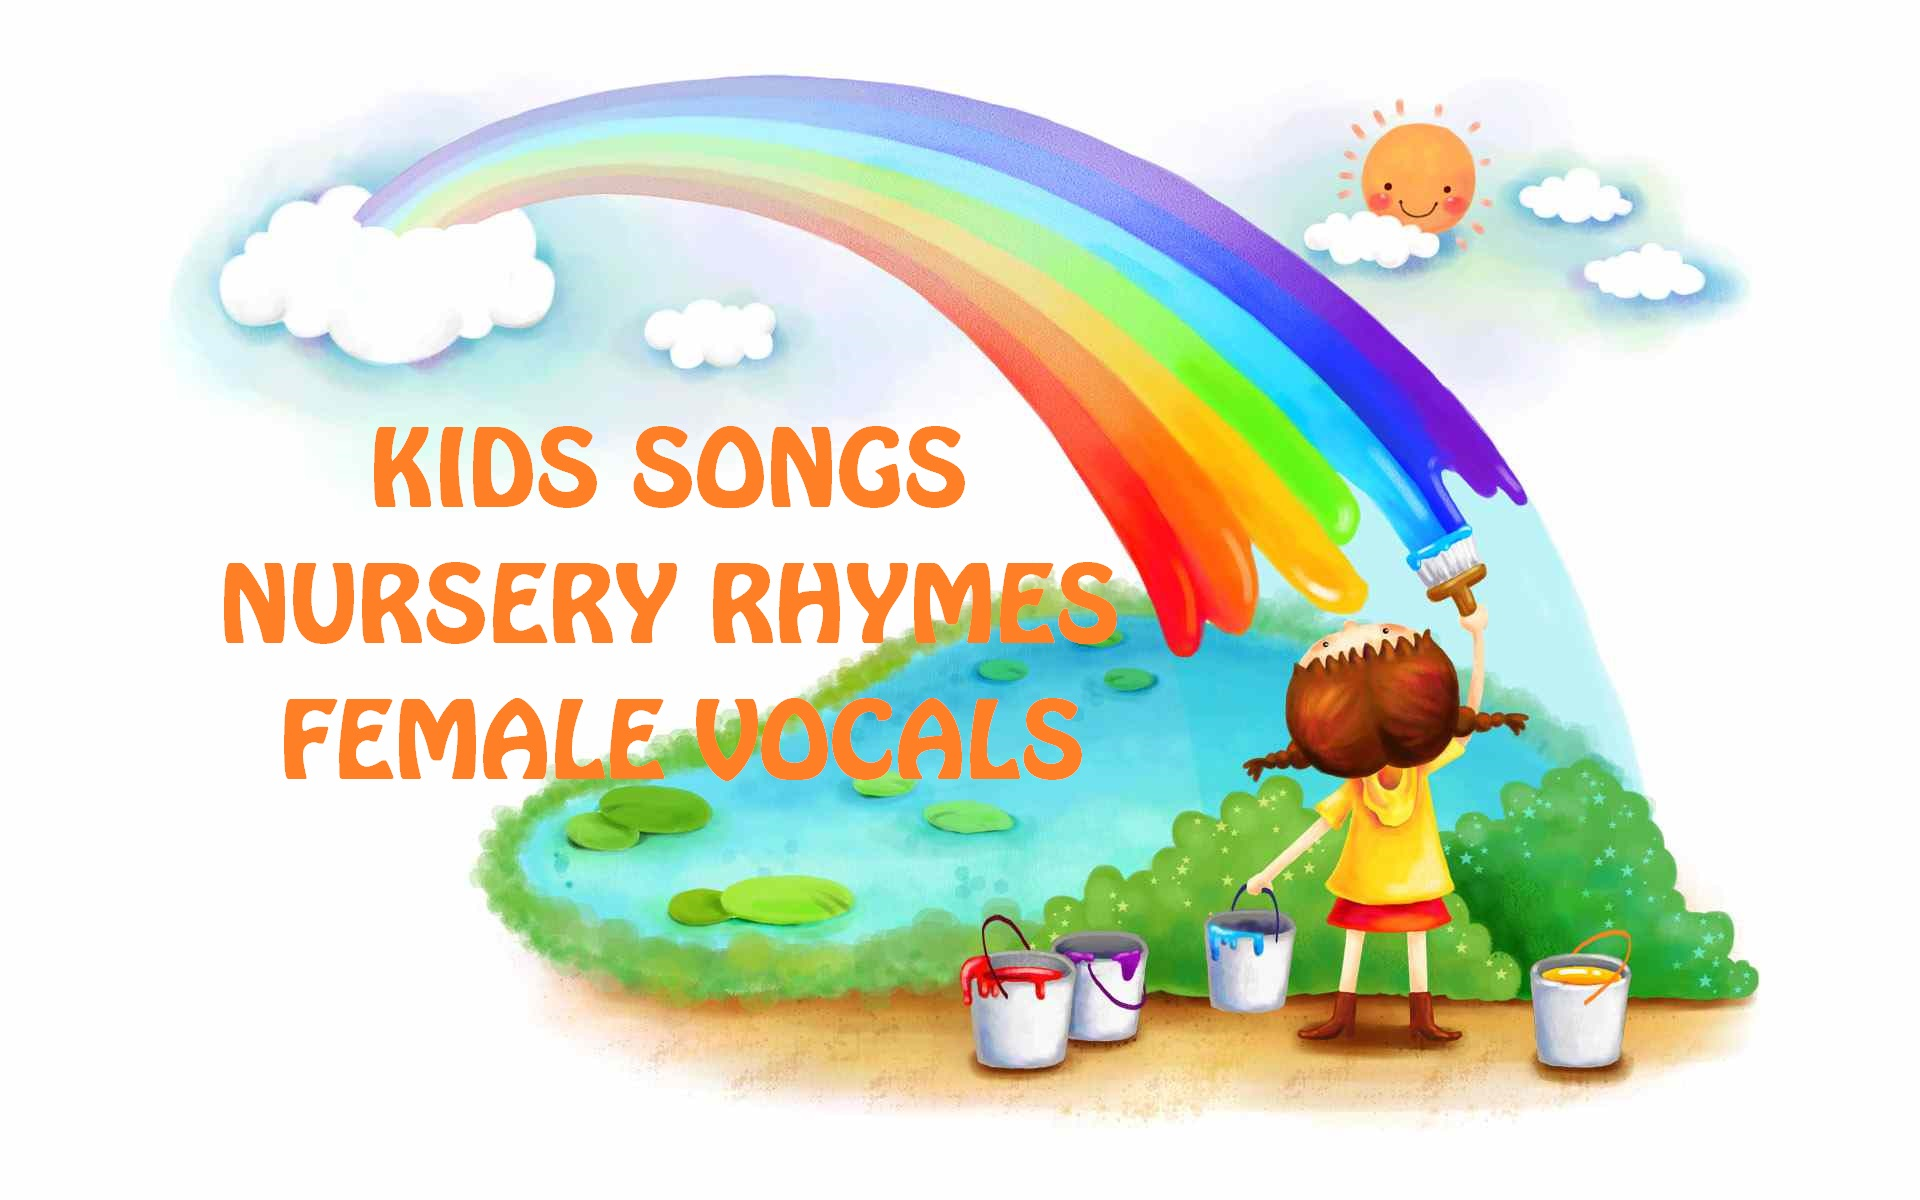 Fully Produce Nursery Rhymes,Children's Songs,Kids Music,Lullabies For You